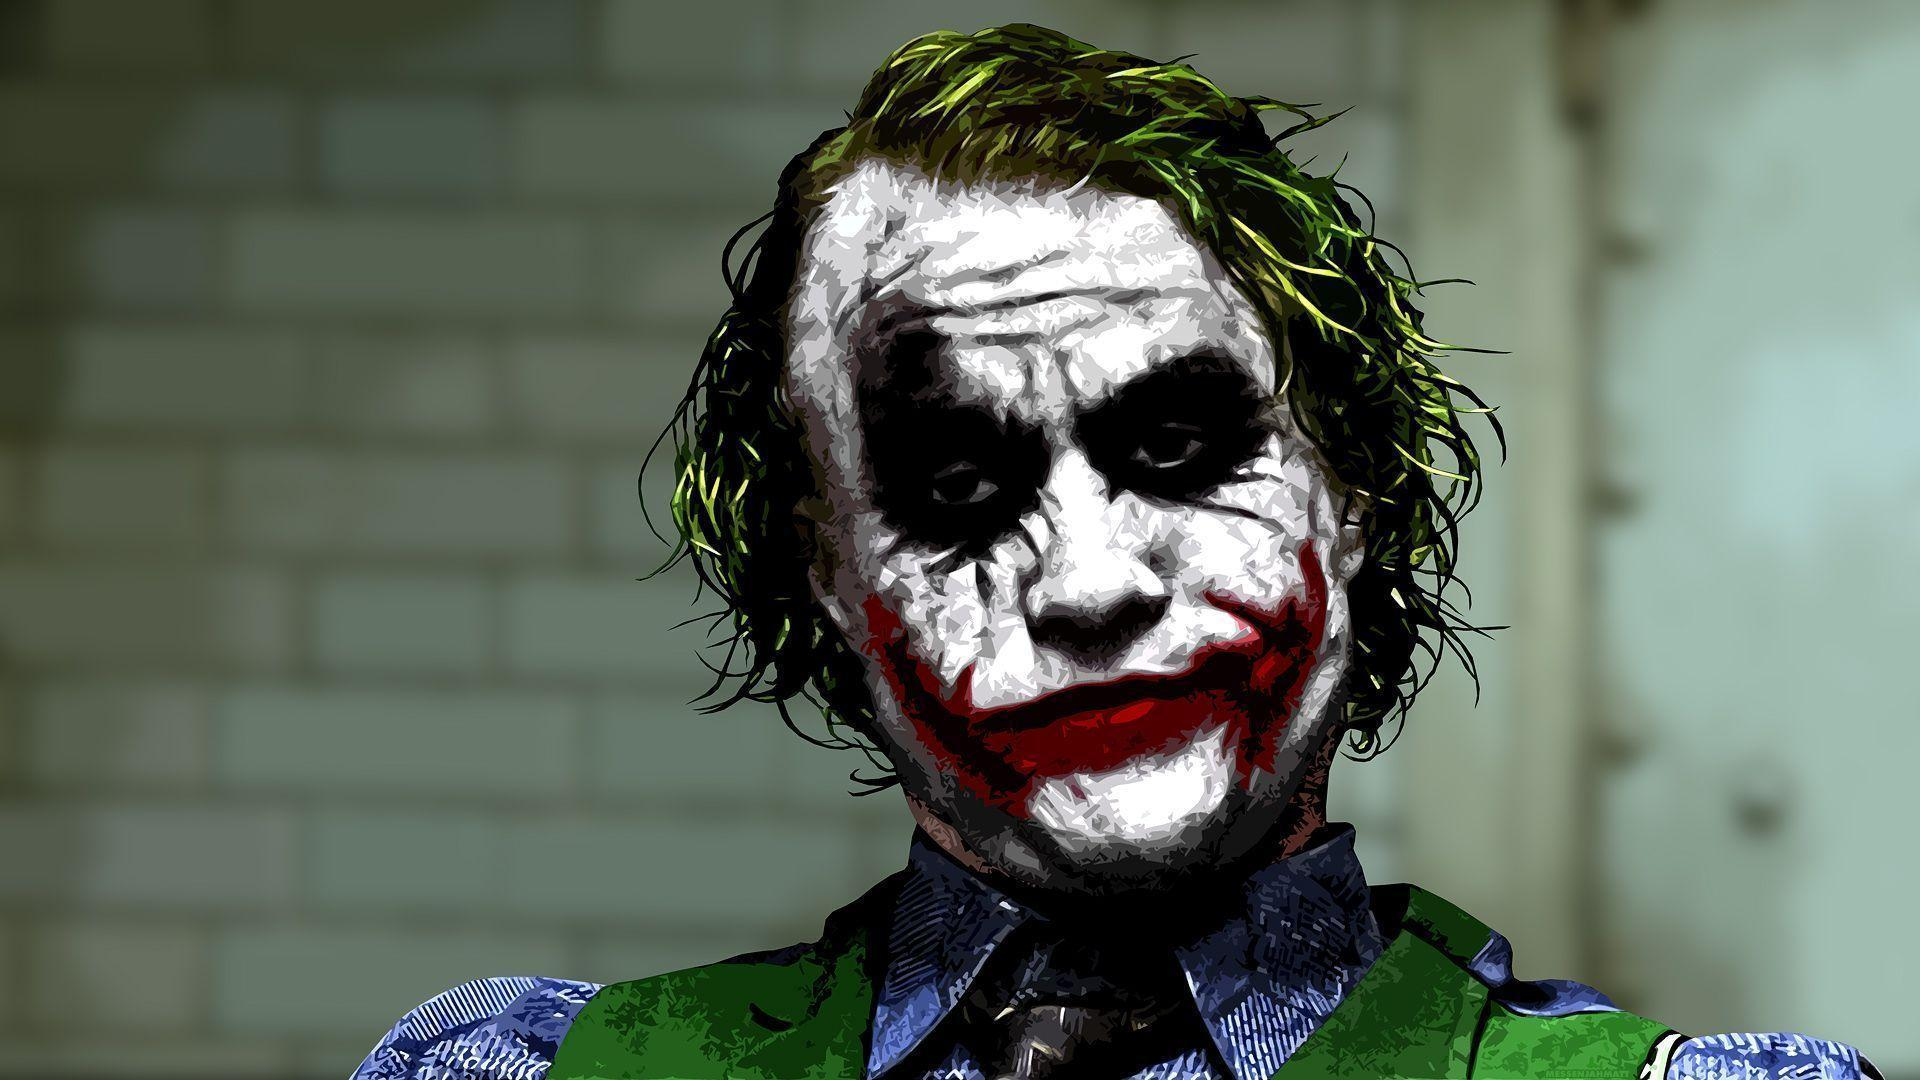 Movies: Joker Dark Knight, joker wallpaper hd 1080p, joker ...